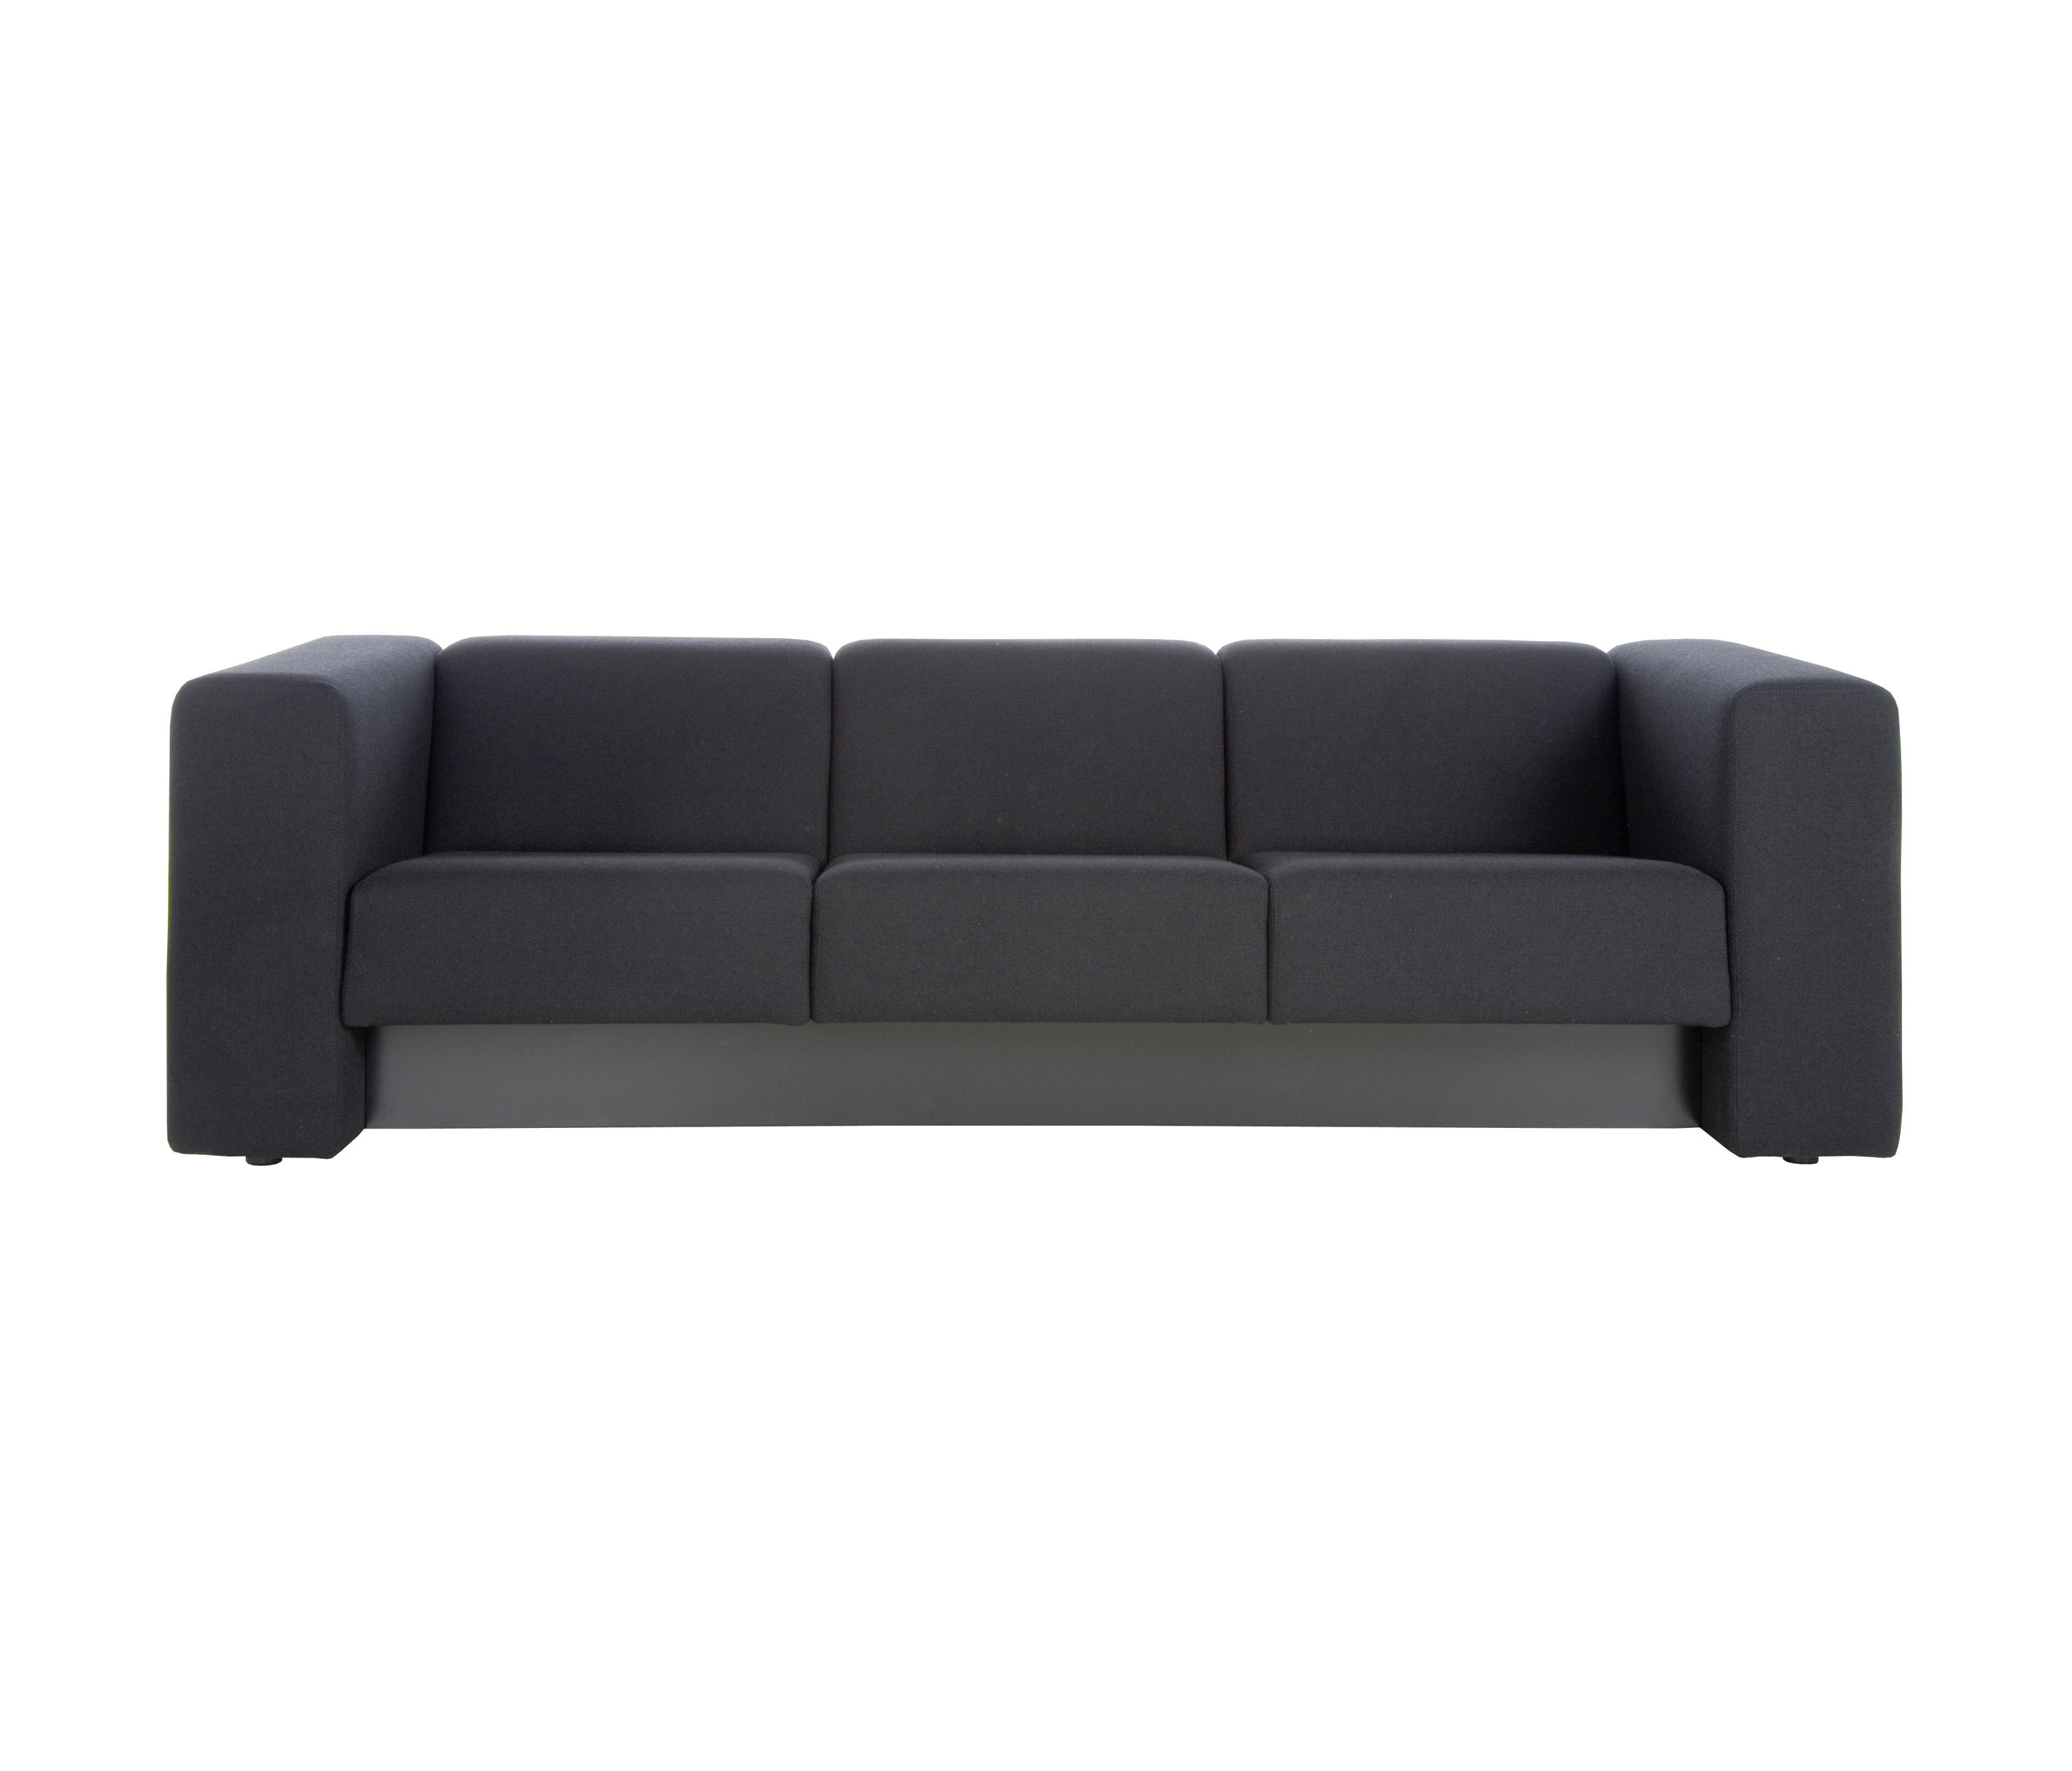 430 Sessel 430 Sofa Loungesofas Von Gelderland Architonic